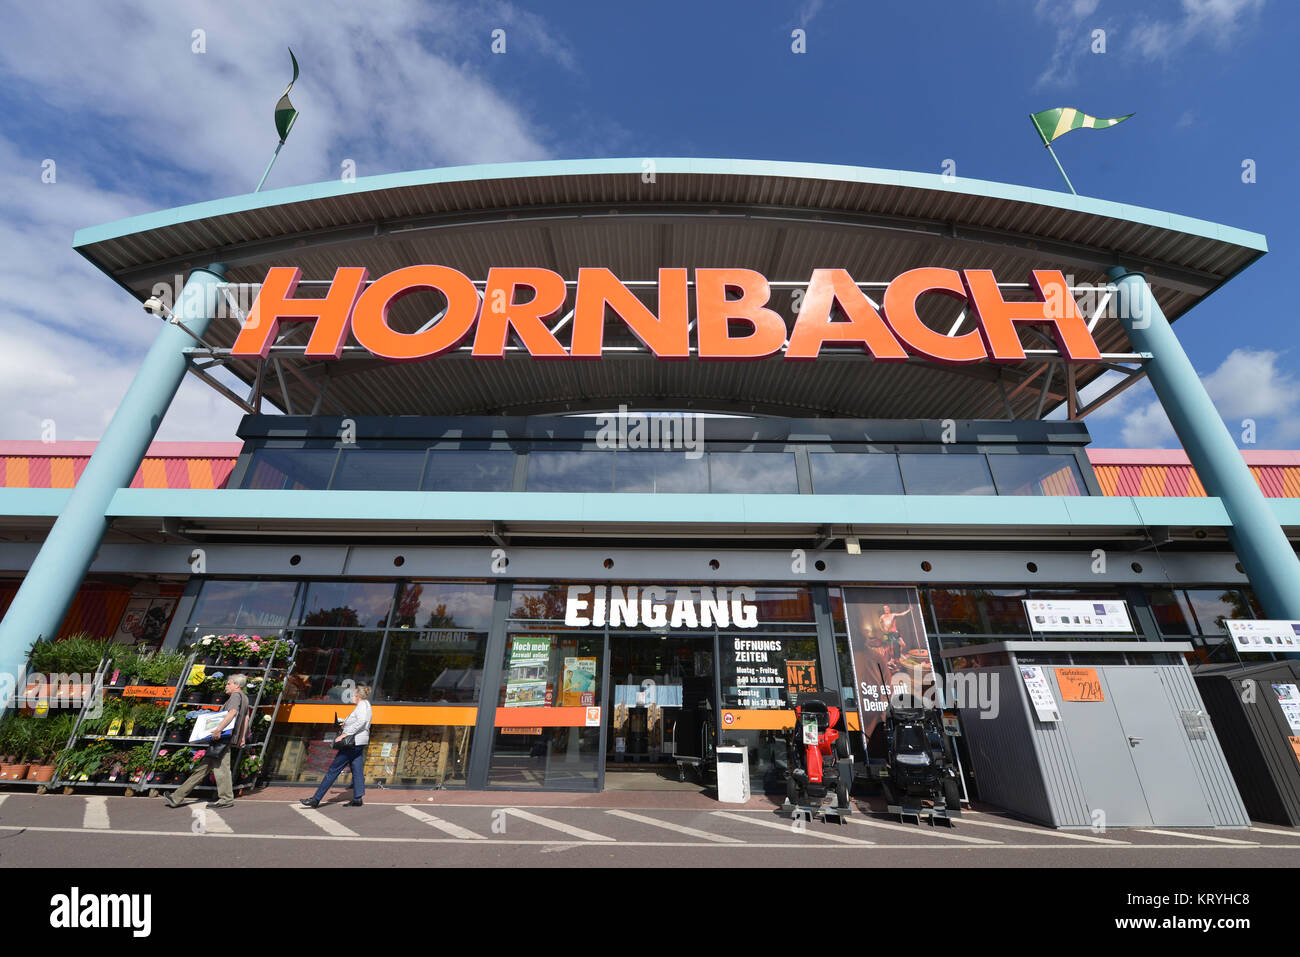 hornbach baumarkt stock photos hornbach baumarkt stock images alamy. Black Bedroom Furniture Sets. Home Design Ideas